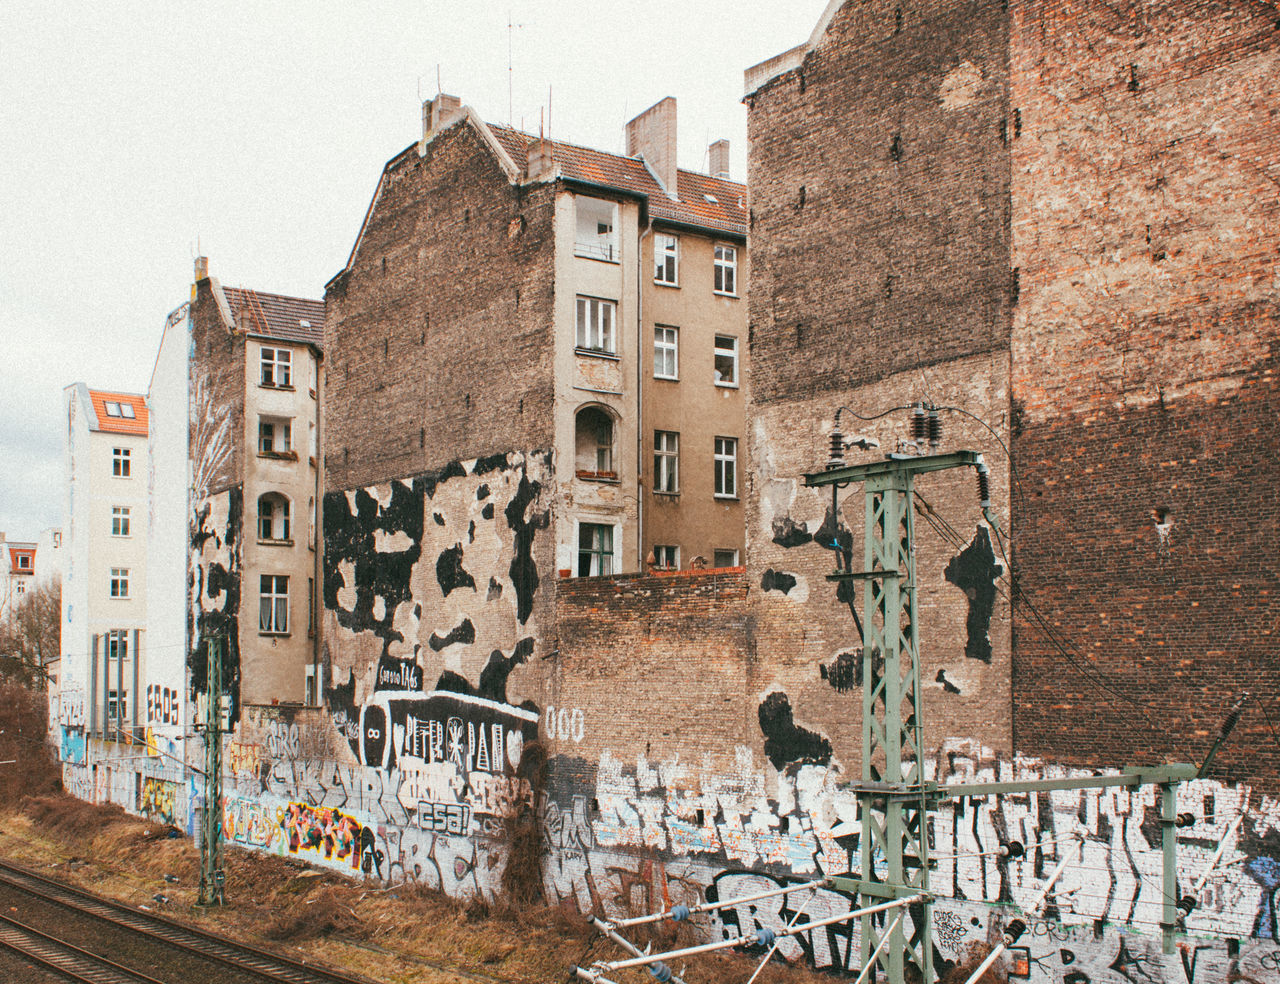 Ghetto Prenzlauer Berg. Architecture Balcony Berlin Berlin Photography Berliner Ansichten Building Exterior Built Structure City Clear Sky Day Façade Glass Graffiti House No People Outdoors Prenzlauerberg Railroad Track Sky Streetart Streetphotography Urban Window Windows